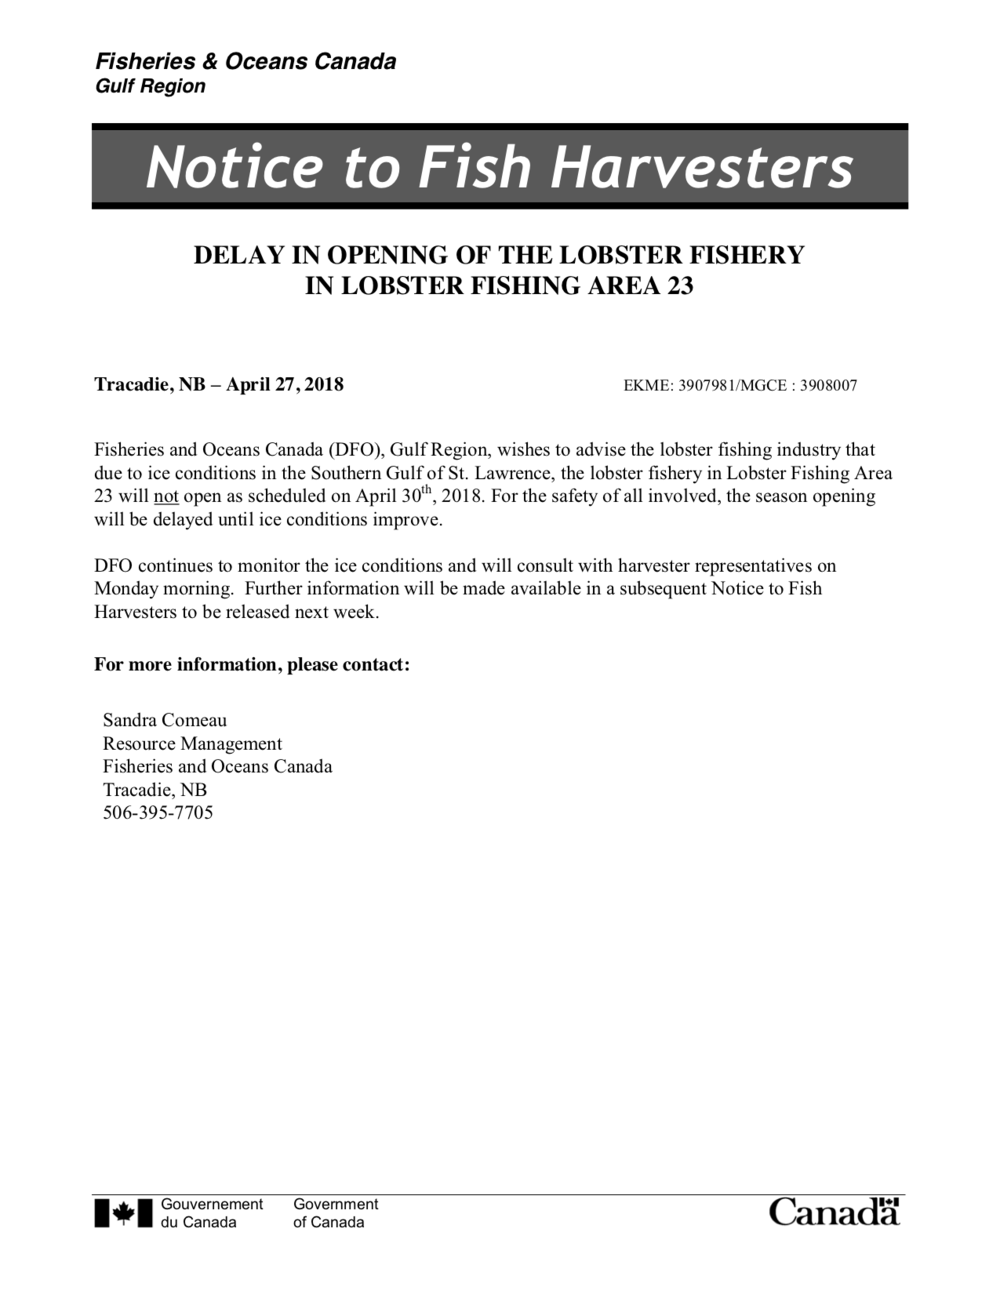 MECTS-#3907981-v1-2018_LOBSTER_Notice_to_delay_LFA_23_lobster_opening-April_27.png